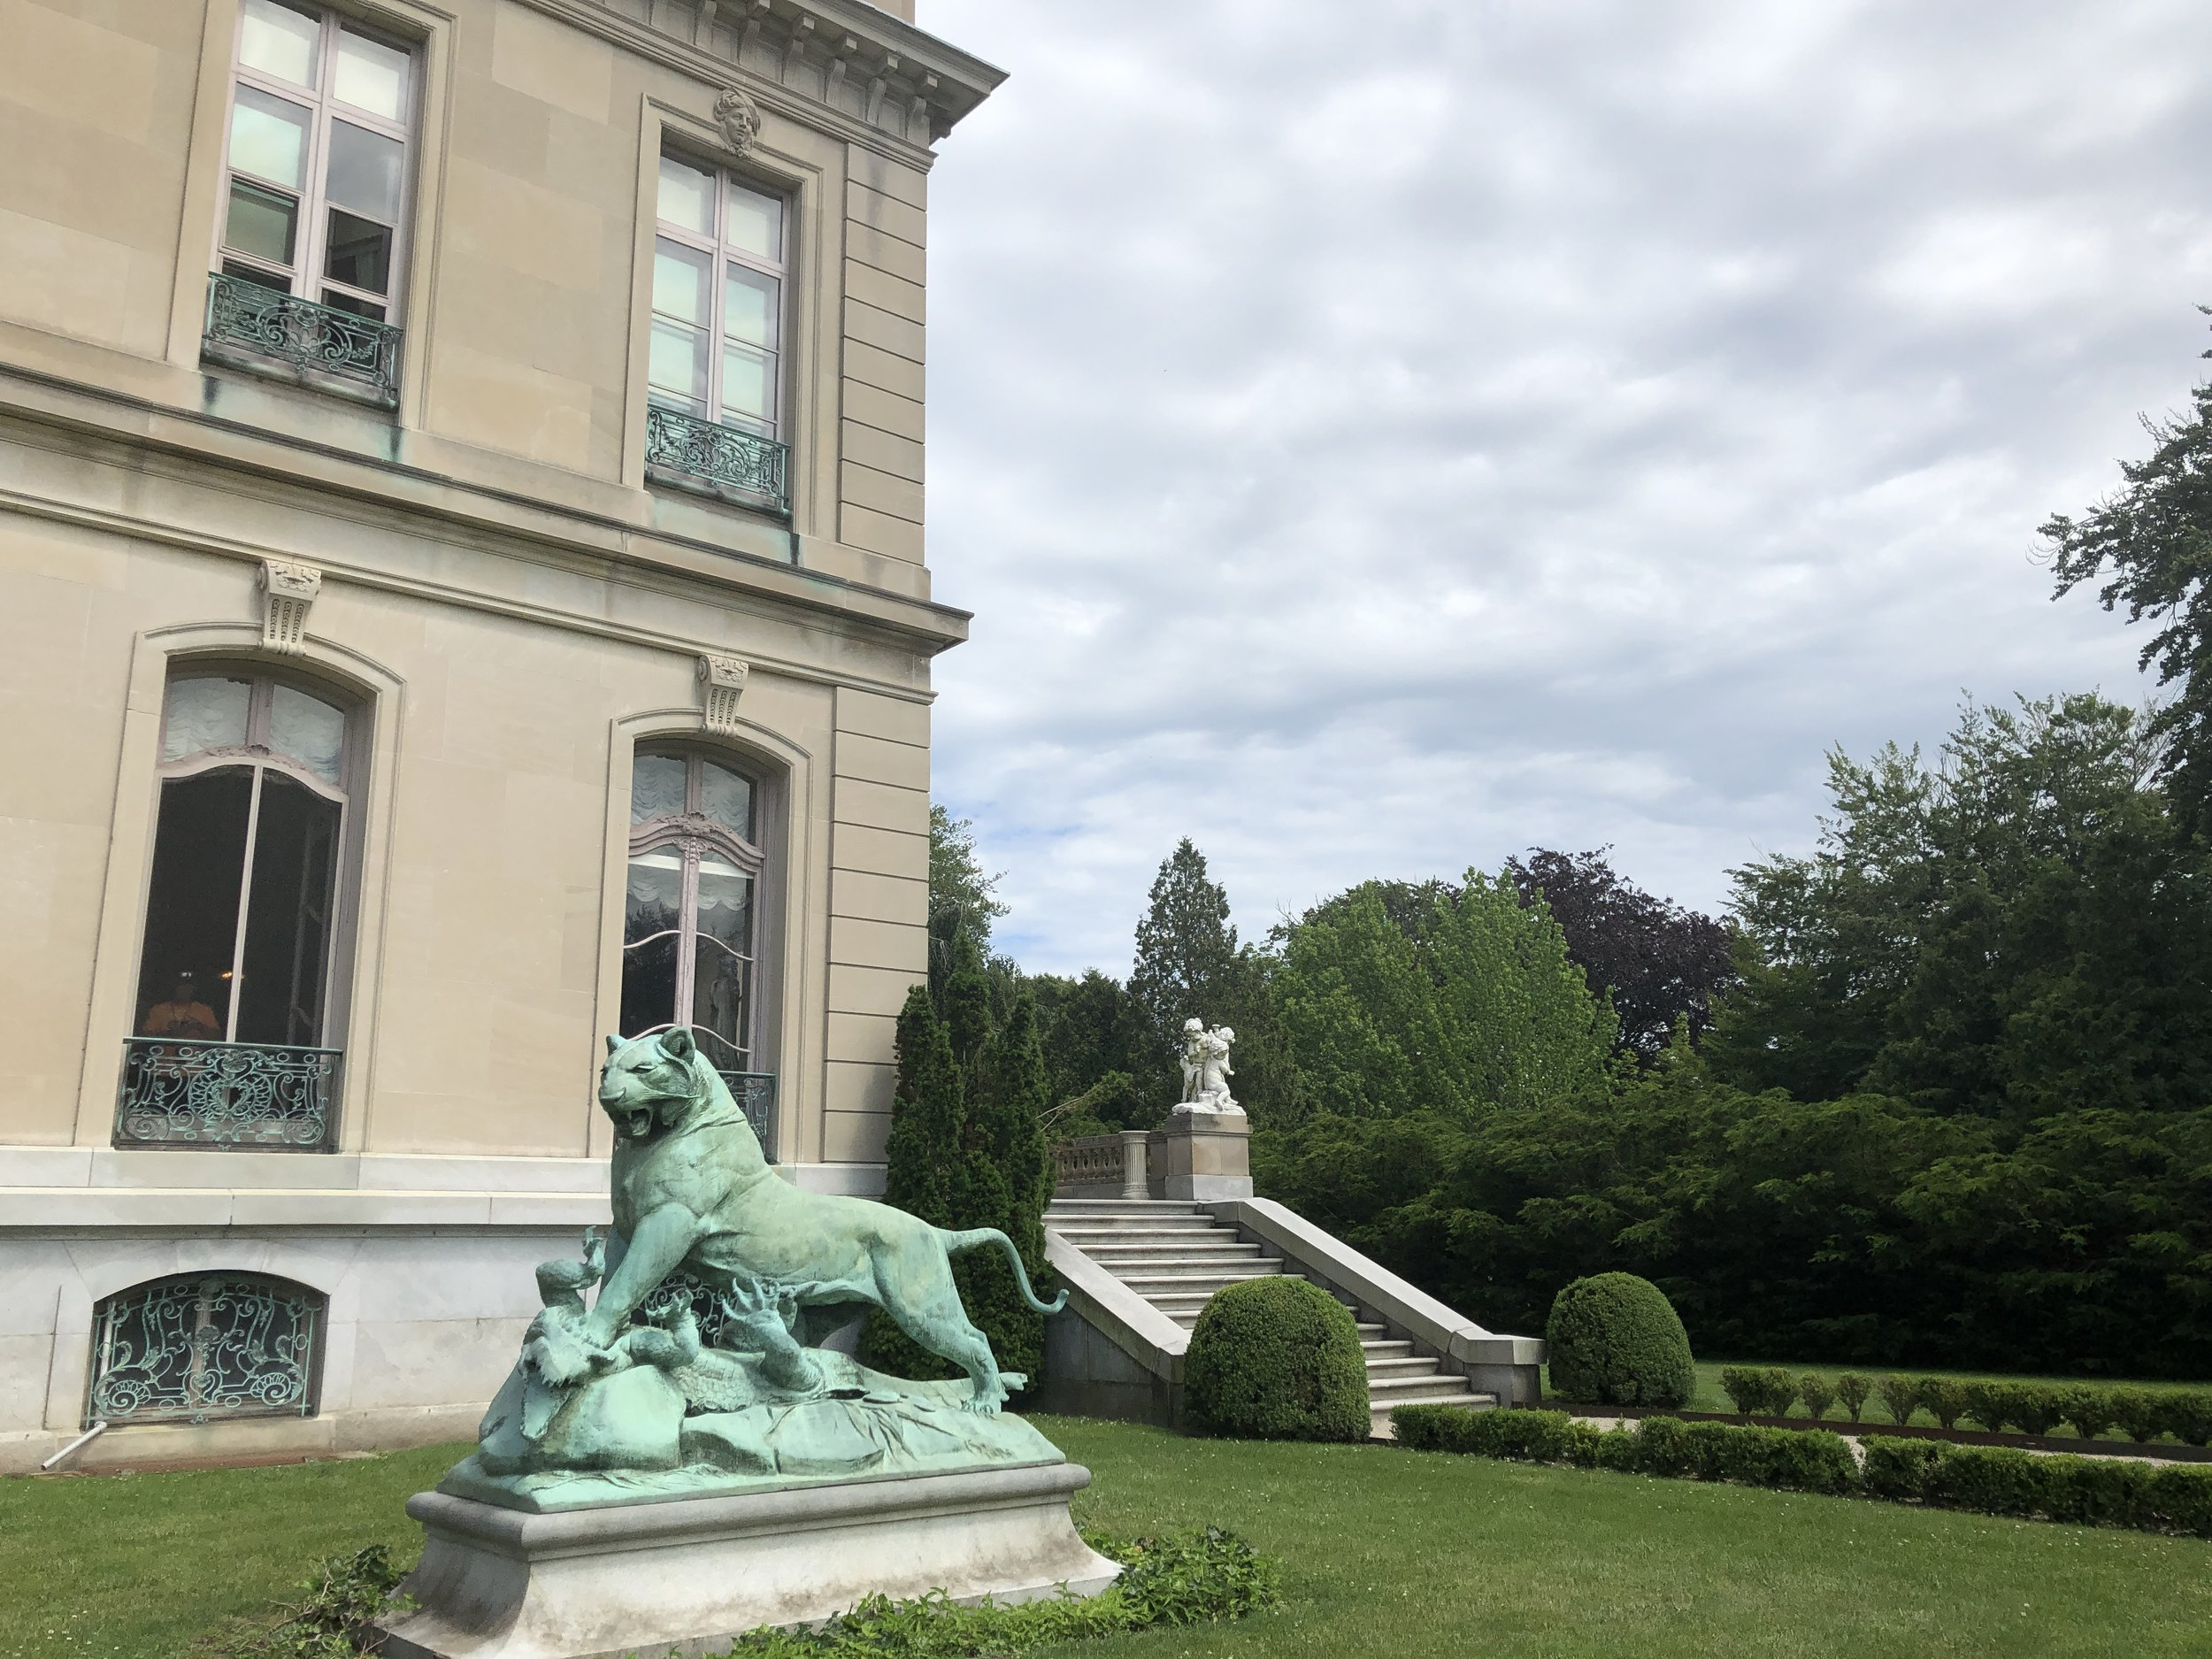 The Elms Mansion / Newport Travel guide